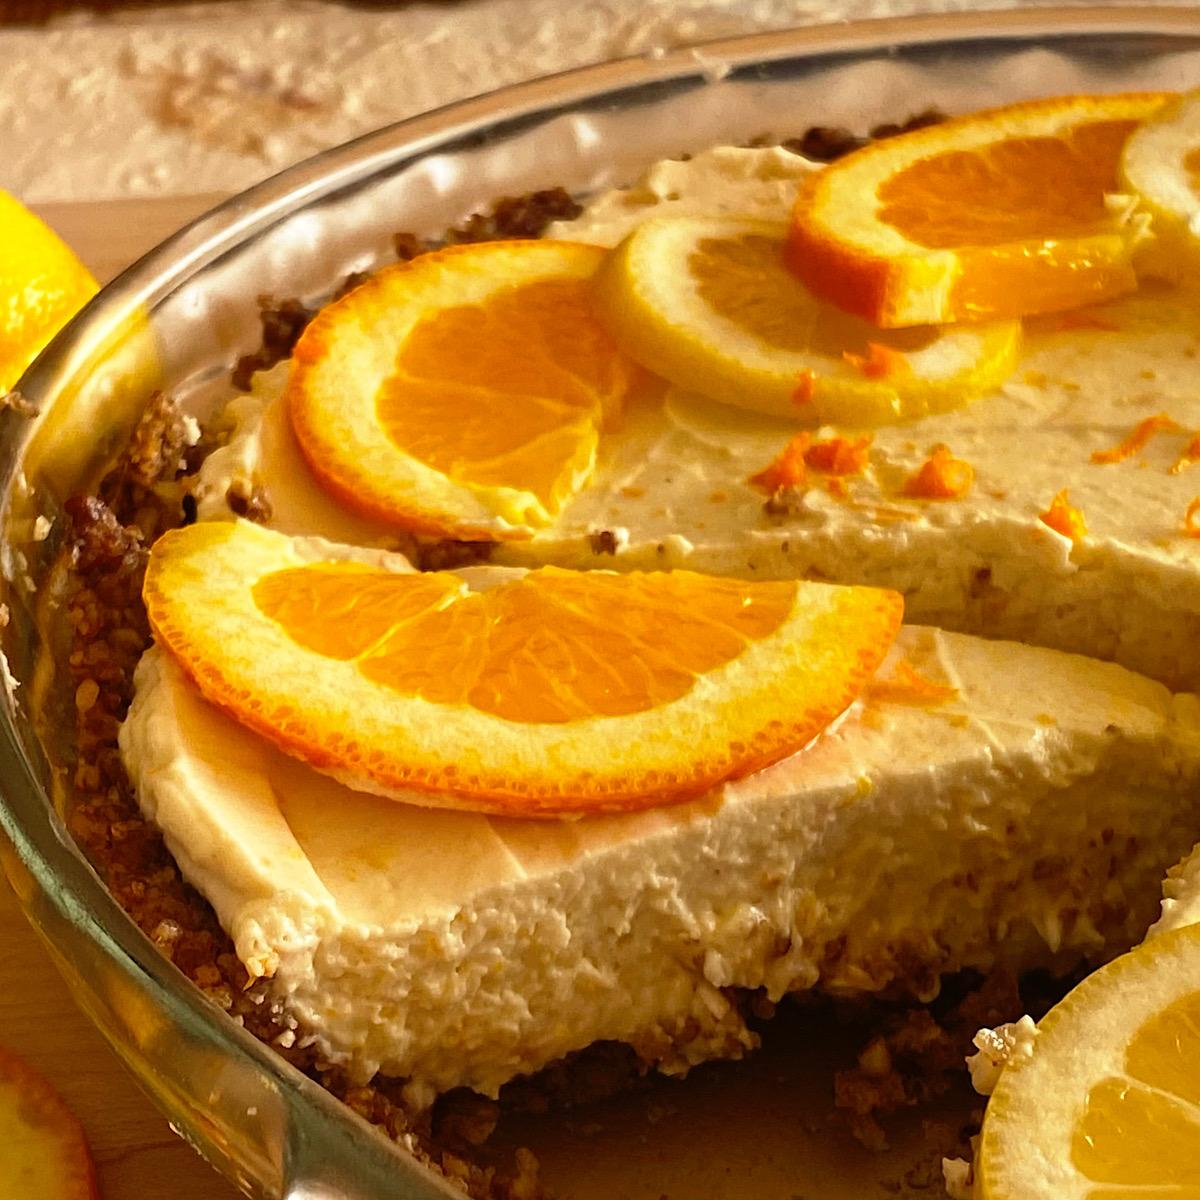 Close up of a piece of low carb lemon orange pie with a nut crust